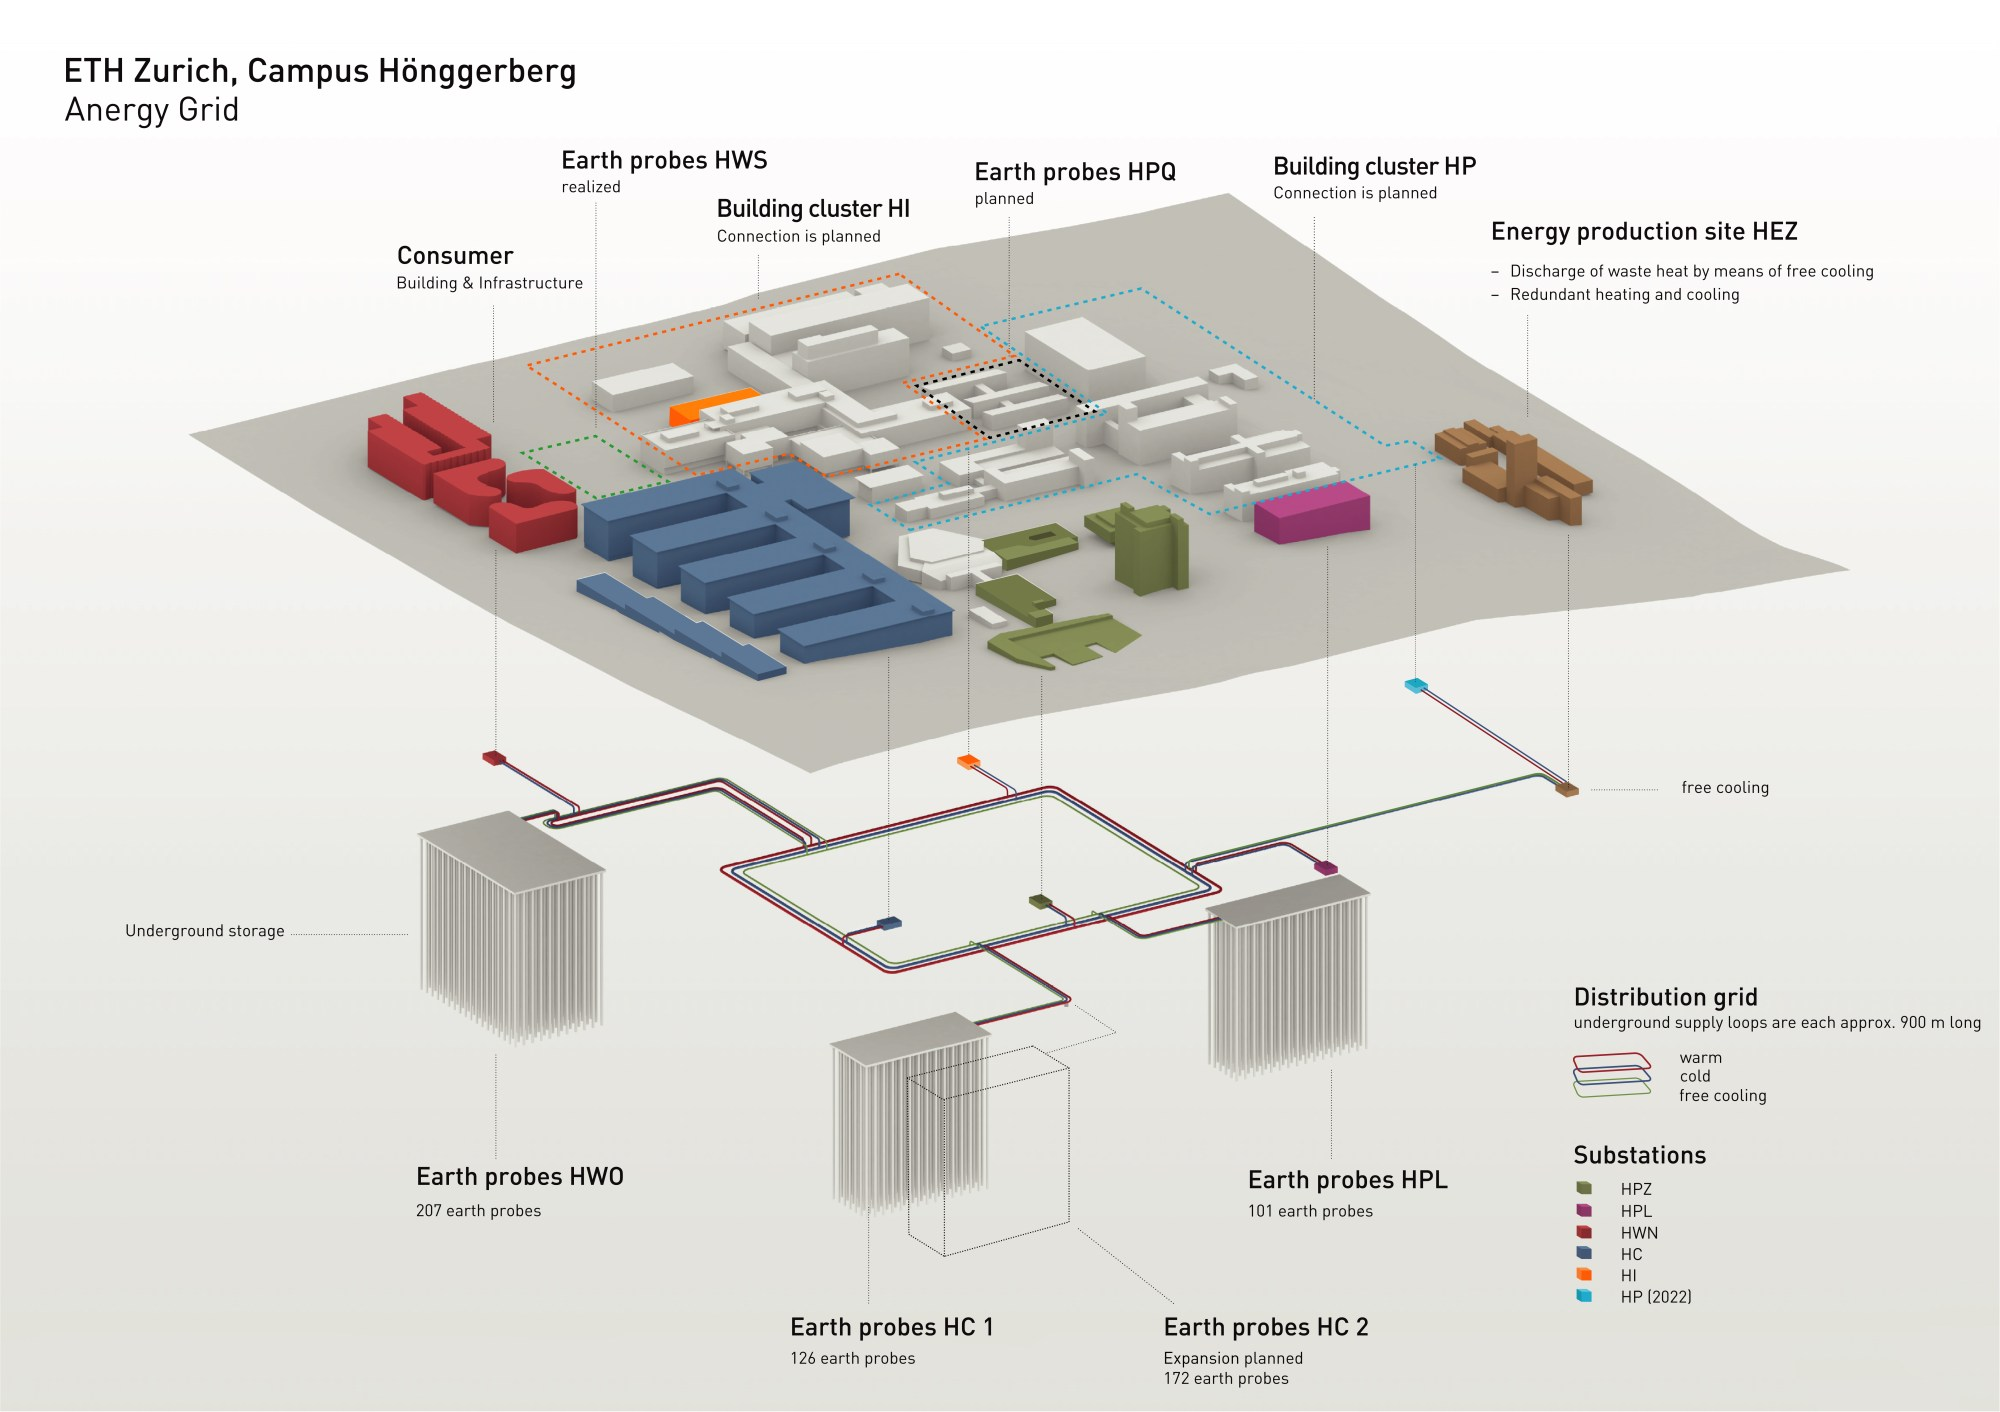 hight resolution of in constructing the underground storage system at campus h nggerberg eth zurich is building a dynamic system in an effort to significantly reduce co2